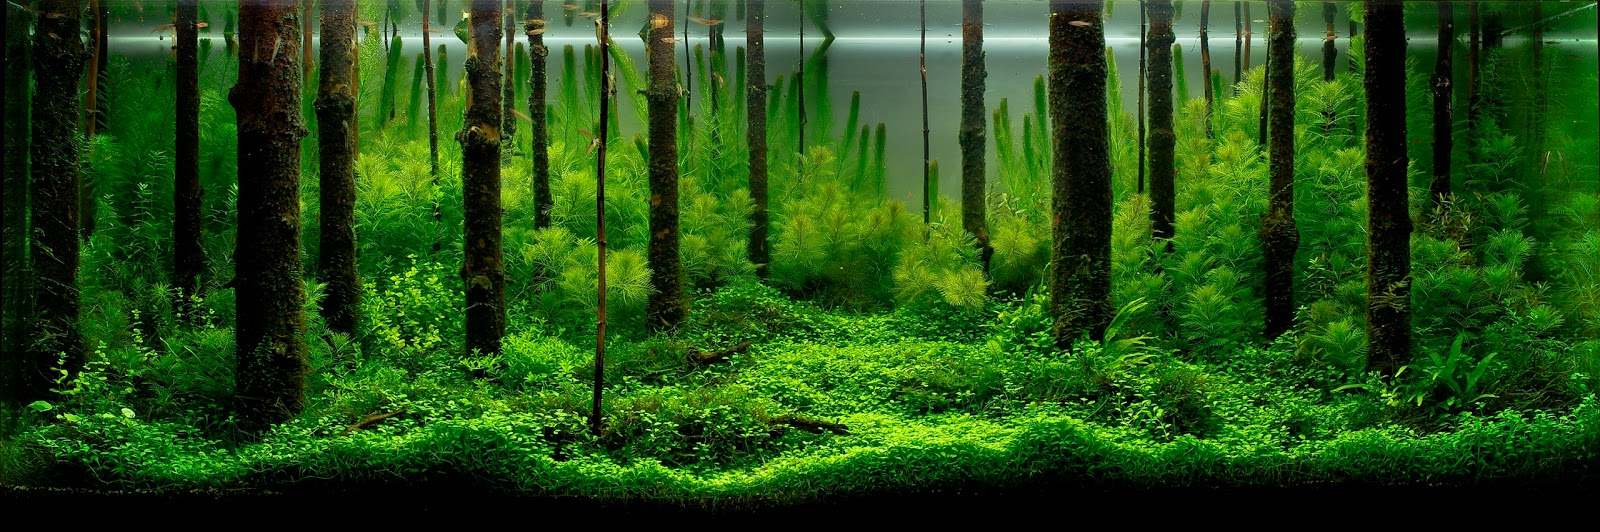 Ada Aquascape : Pavel Bautins First Place 2010 IAPLC Aquascape